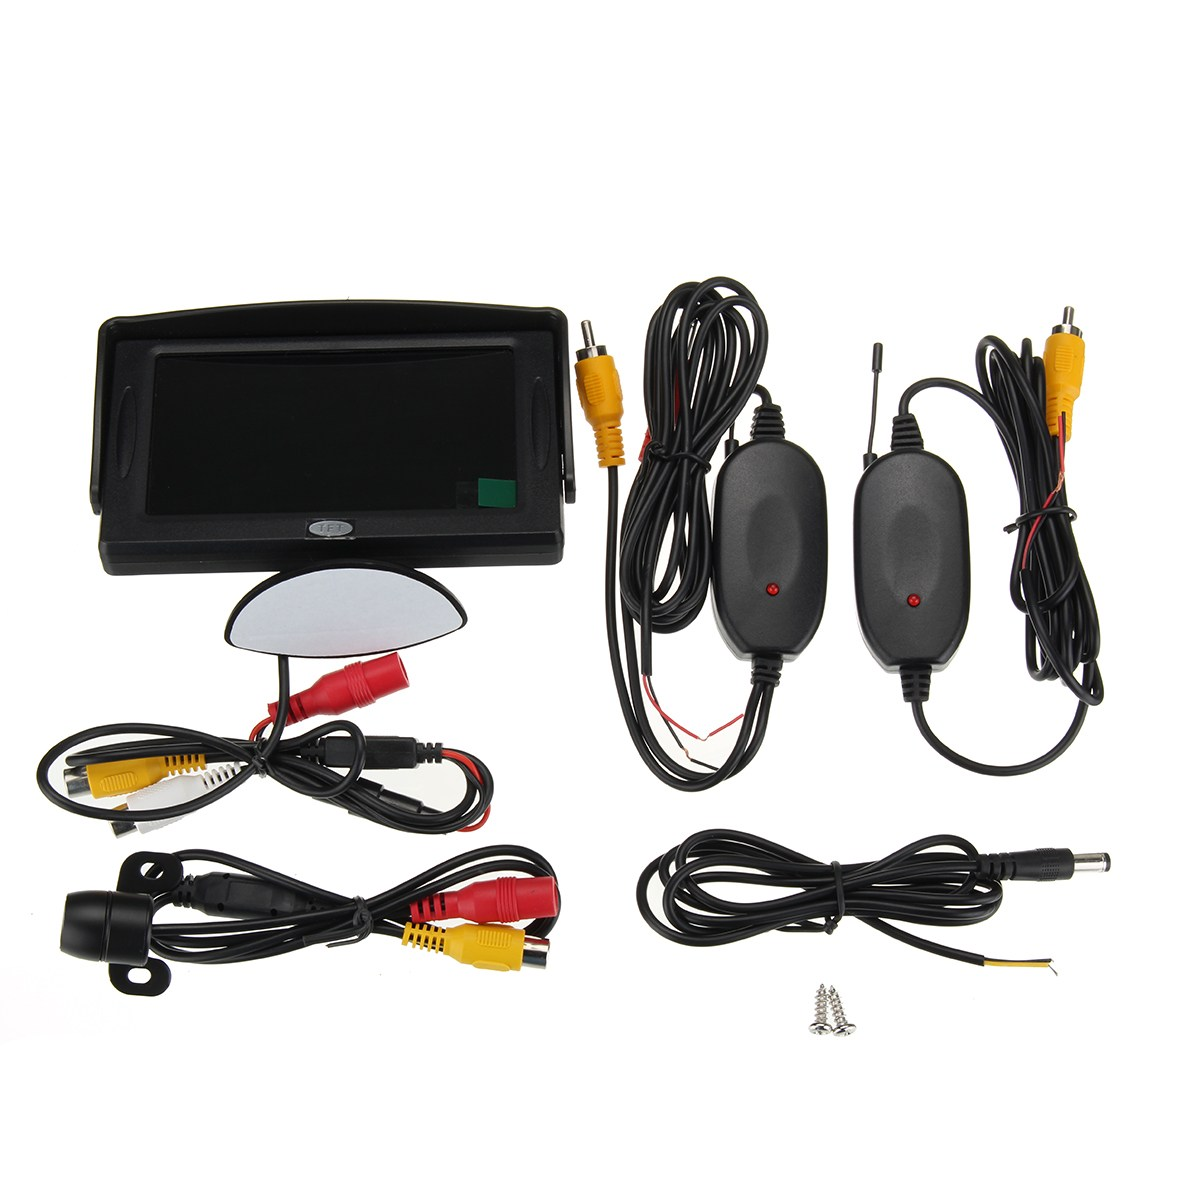 Wireless 120 Degree Car Rear View Backup Reverse Camera 4.3